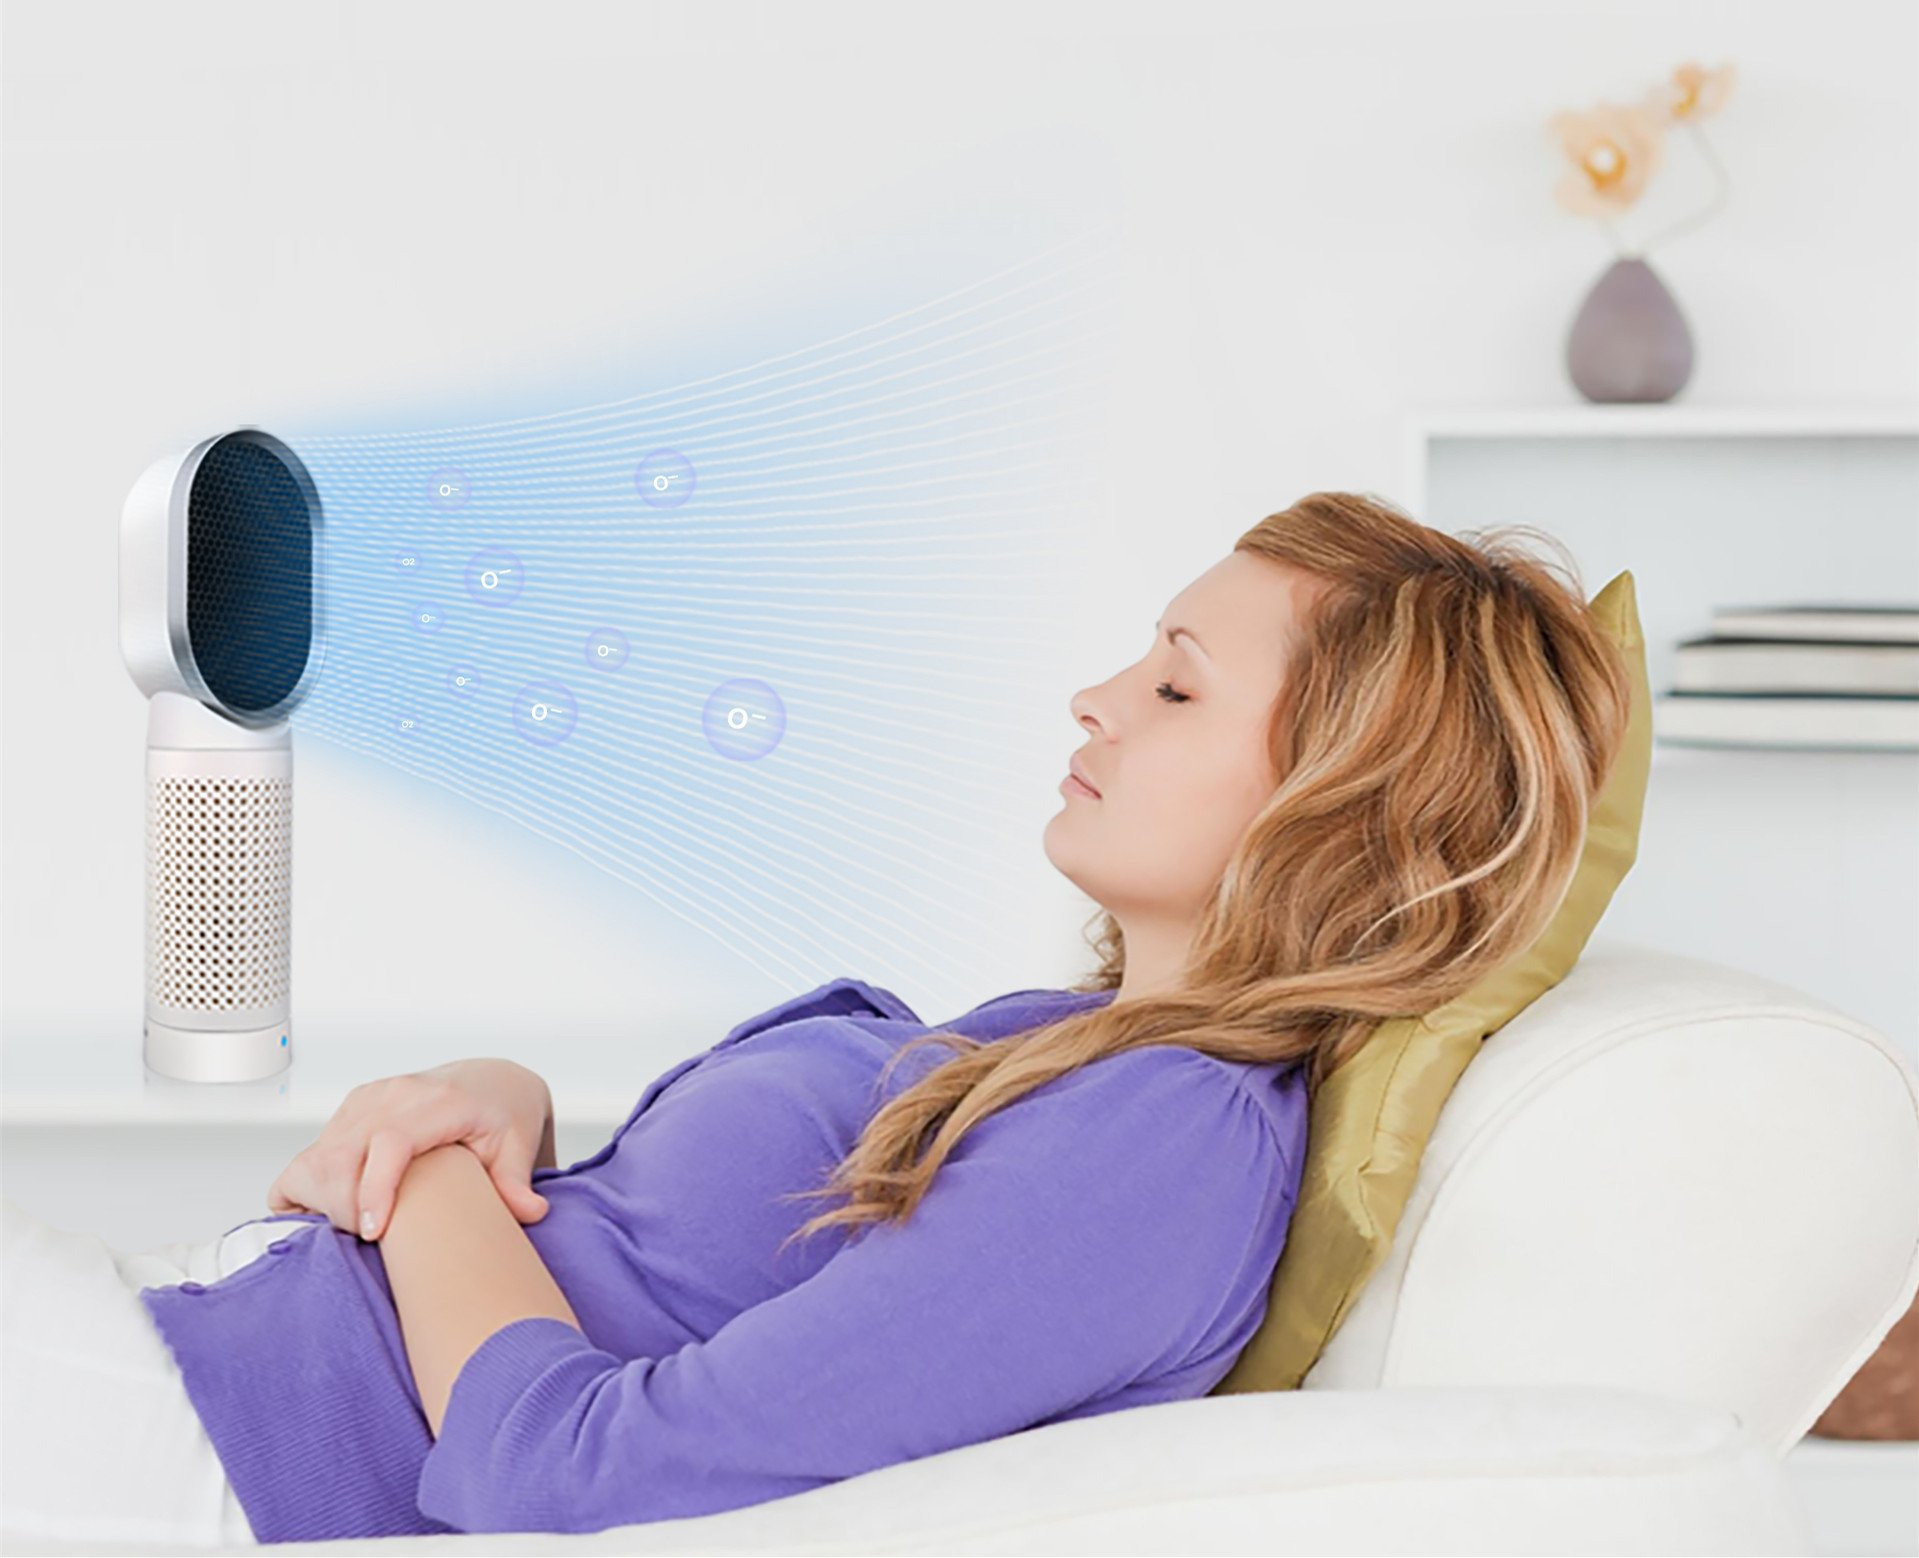 IREALIST Air Purifier 2-Speed Air Cleaner with Carbon Filter Quiet Odor Allergies Eliminator Ideal for Small Room, Allergies, Pet Odor, Smoker